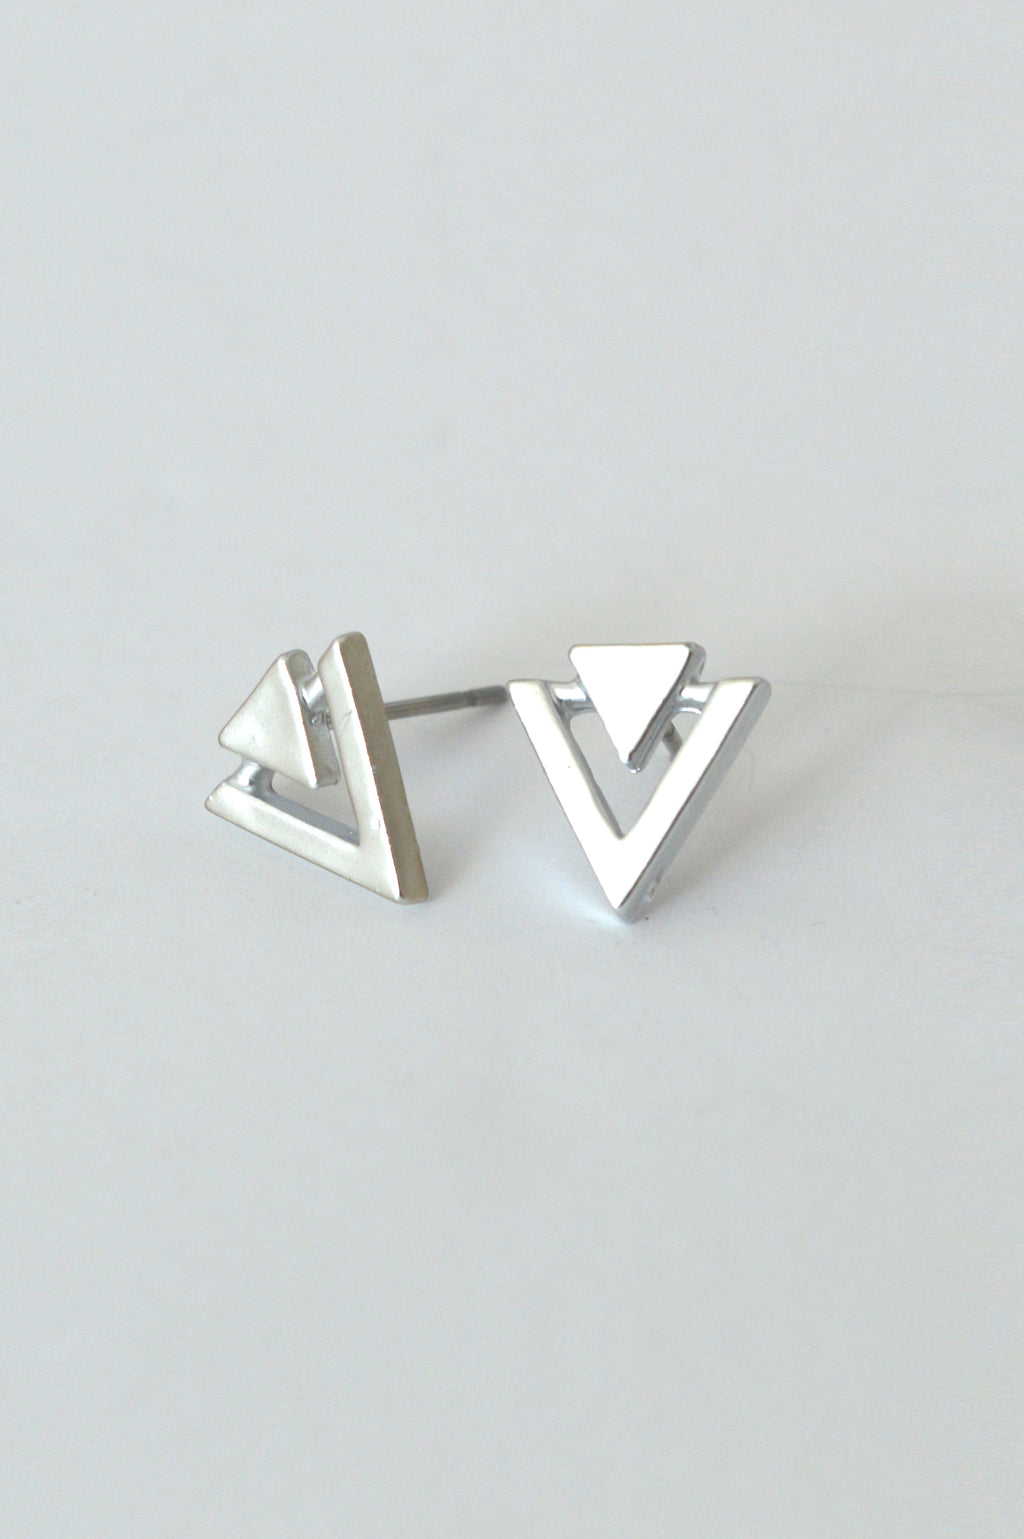 beck & boosh geometric inspired fashion jewelry small silver triangle studs with cut out design in a matte finish